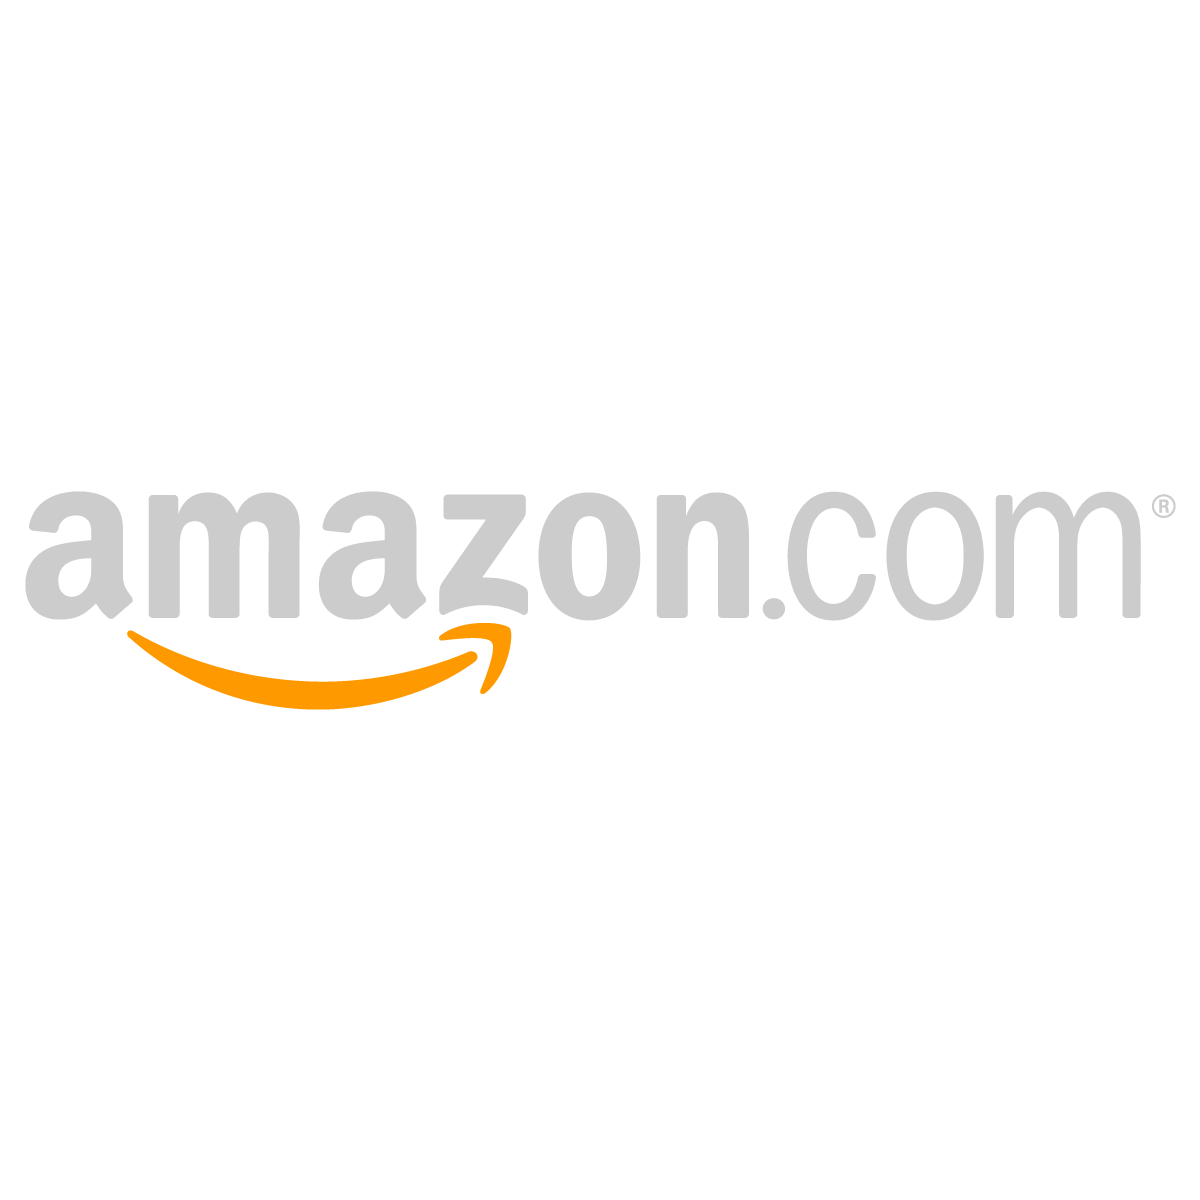 amazon-com-logo-vector-gray.png